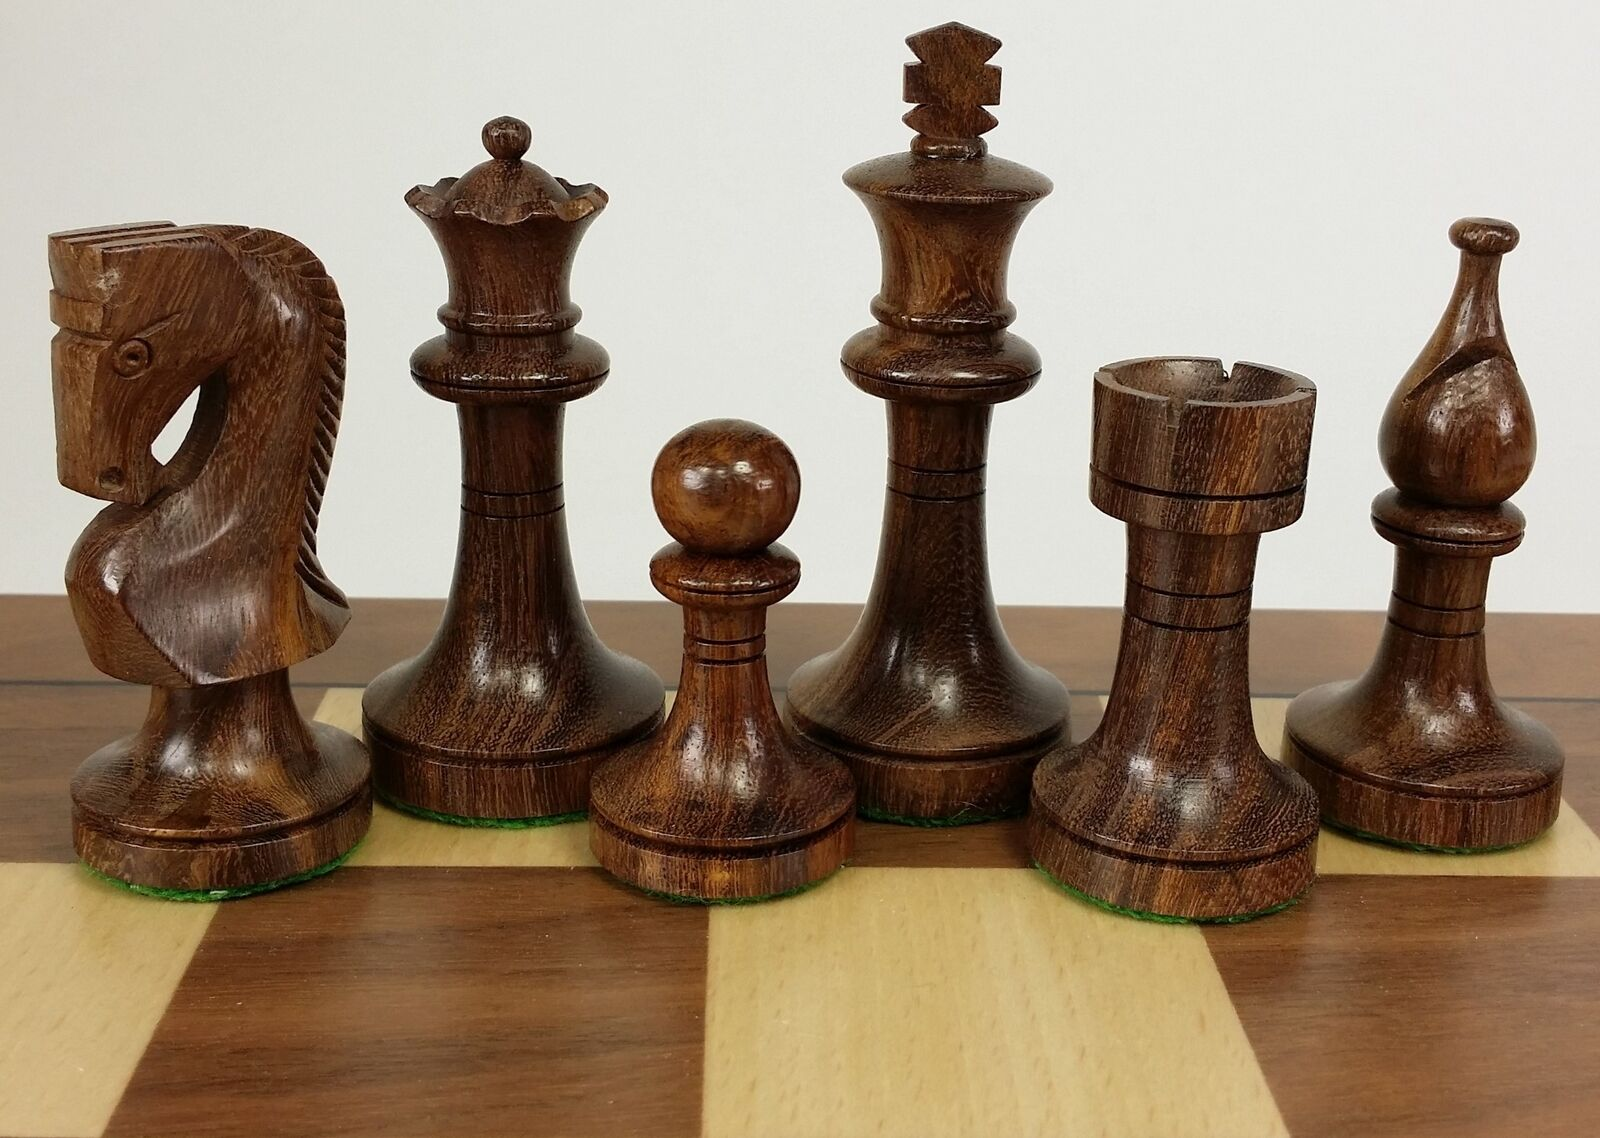 DBL QUEENS Sheesham & Boxwood RUSSIAN 3 1 2  KG Staunton Chess Men Set -NO BOARD